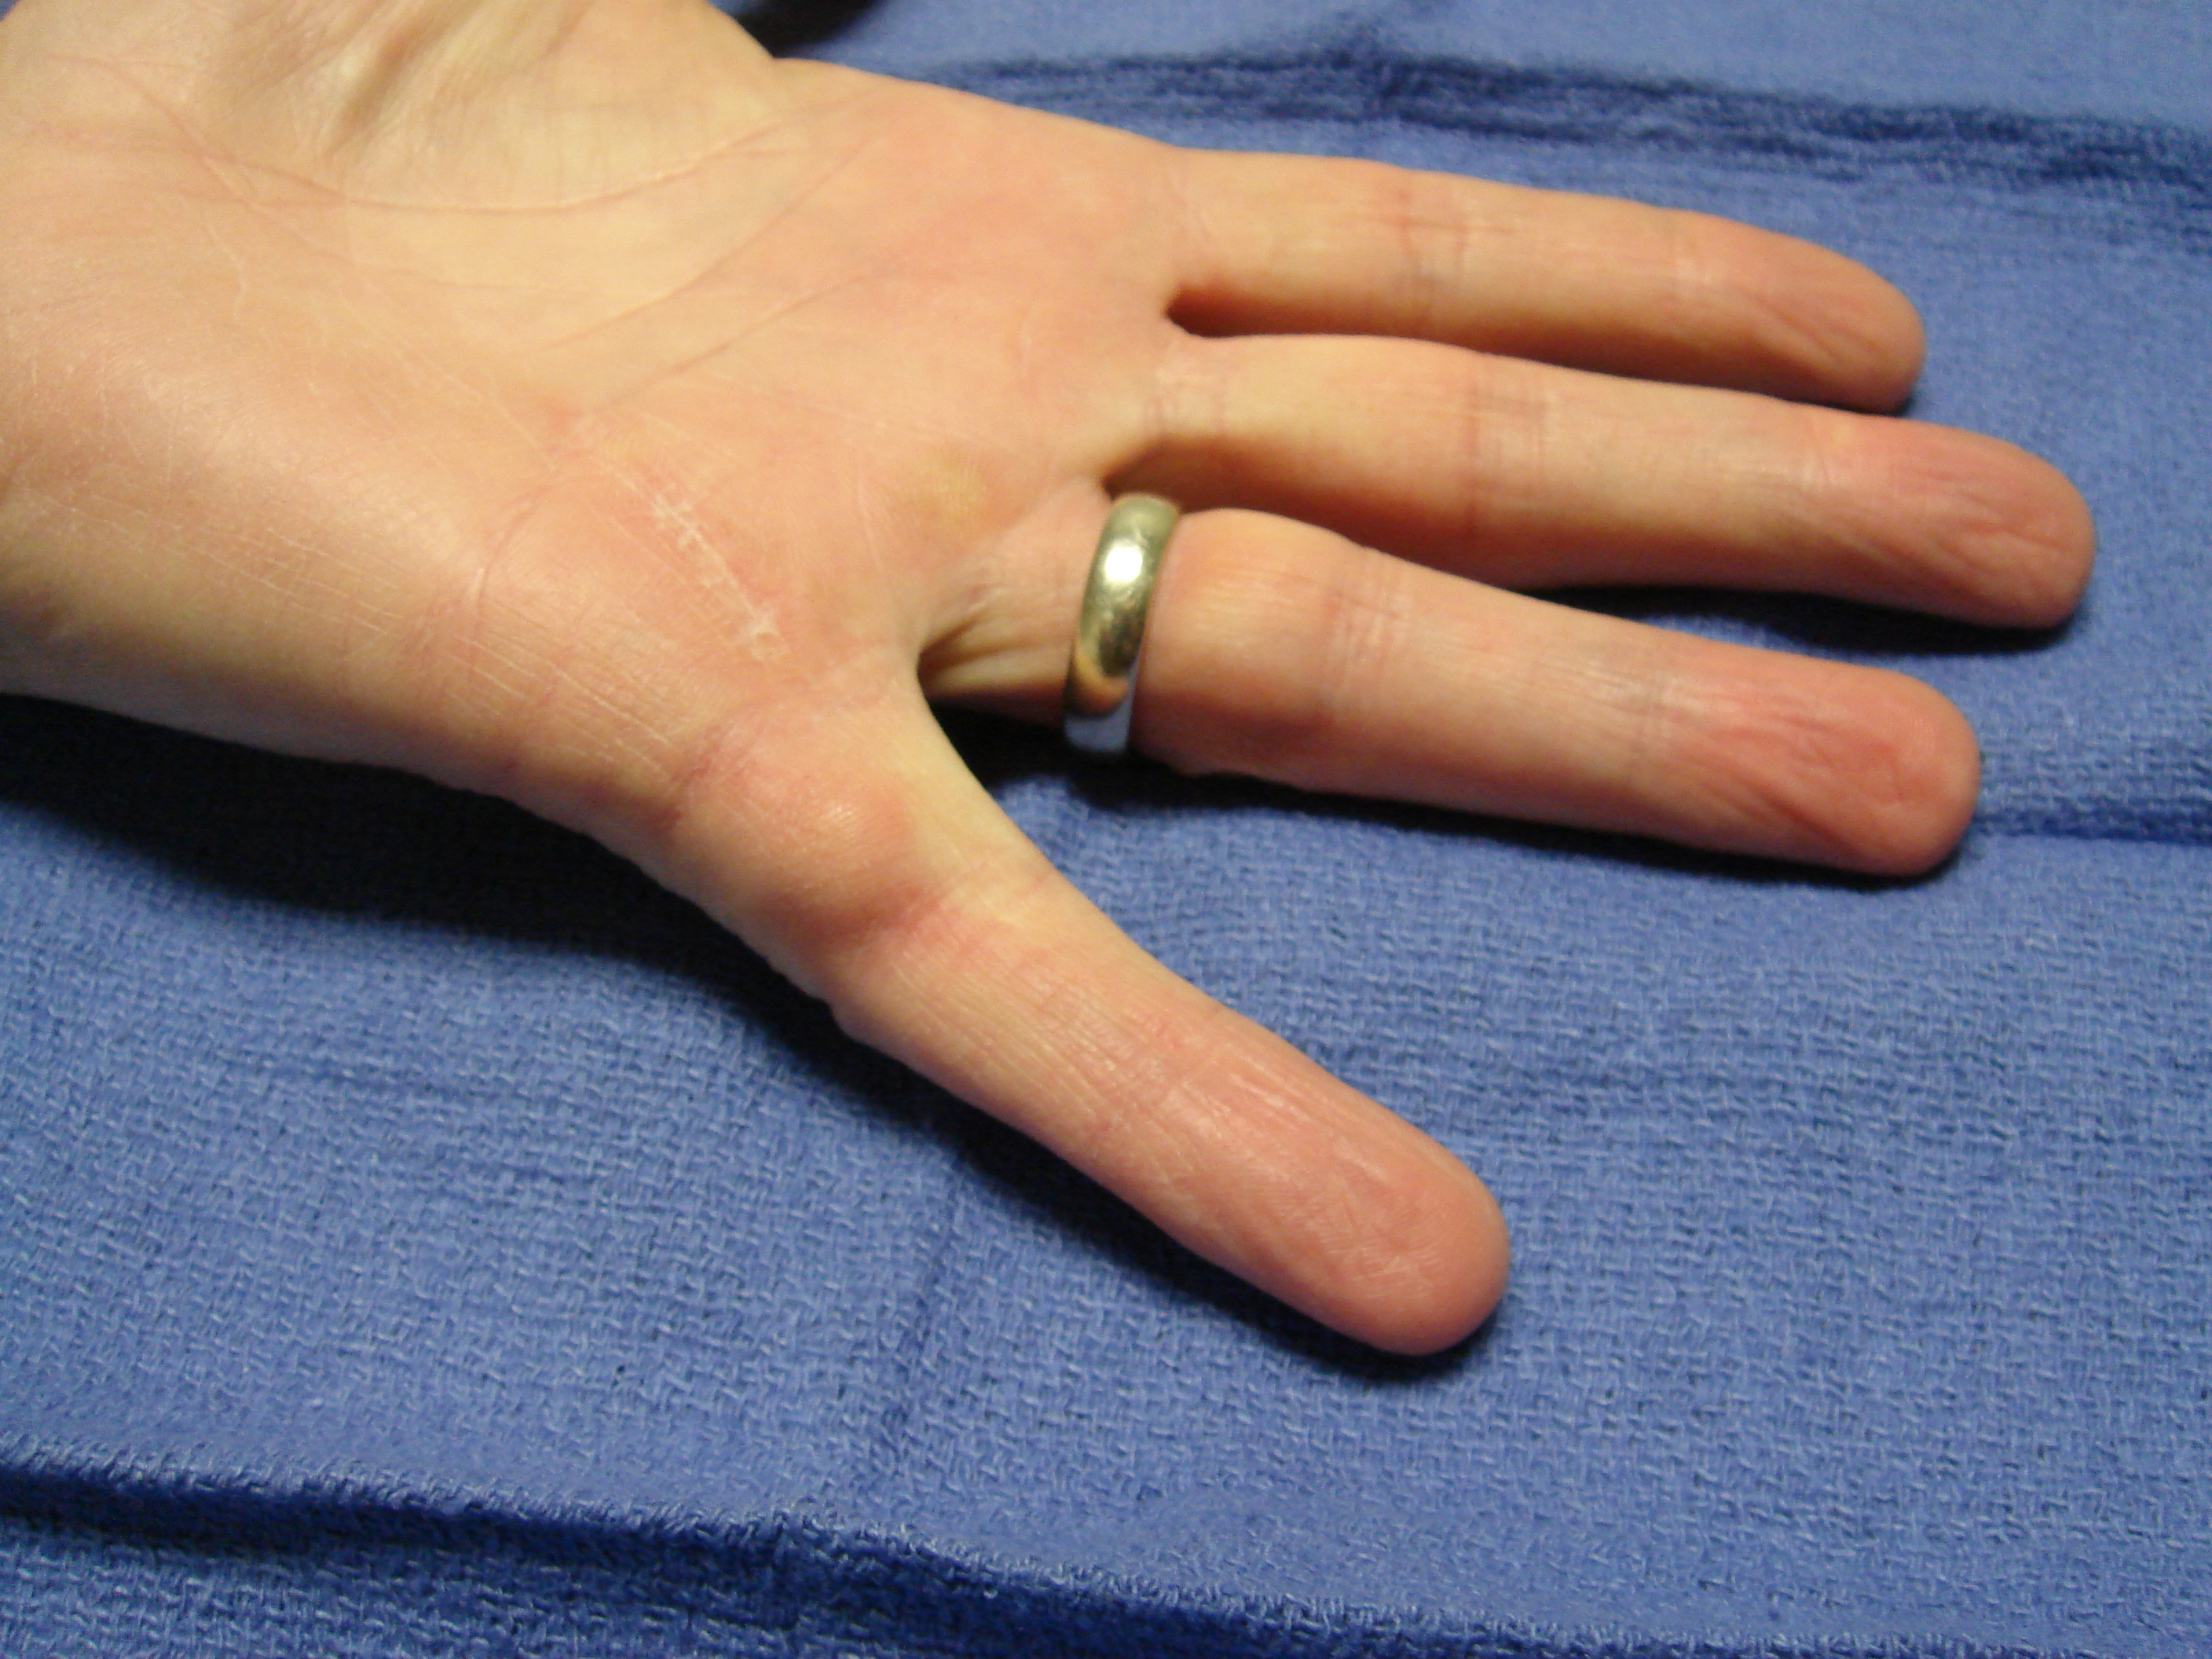 Figure 3d: Six months after collagenase treatment the patient maintains full active motion. A proximal phalangeal fascial nodule is seen slightly enlarged from pre-treatment; but there is yet no new contracture.